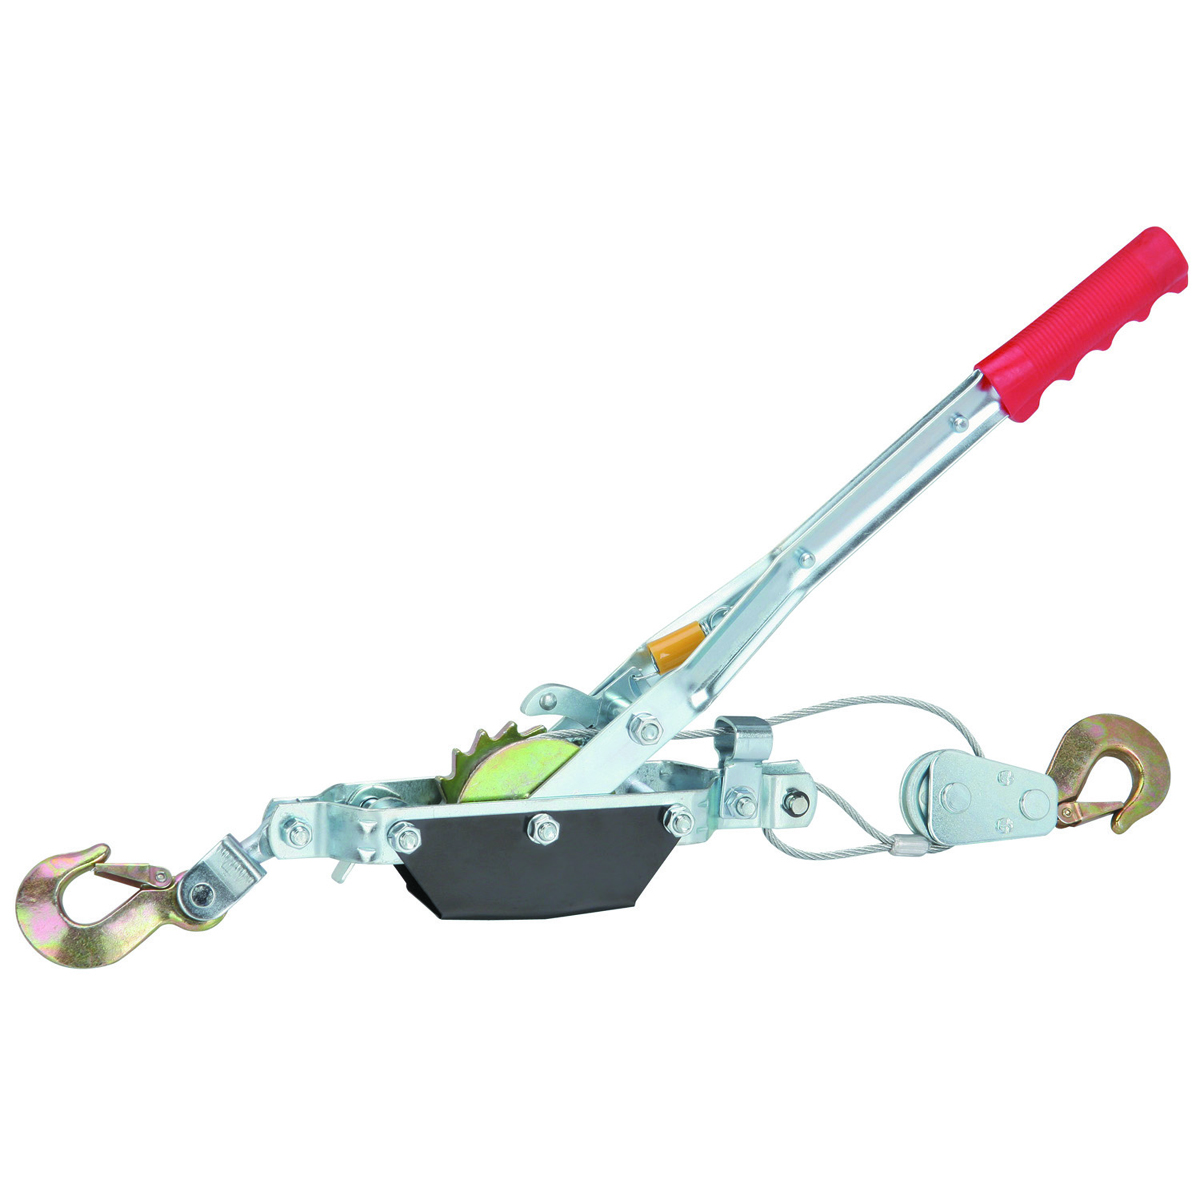 1200 Lb. Capacity Cable Puller